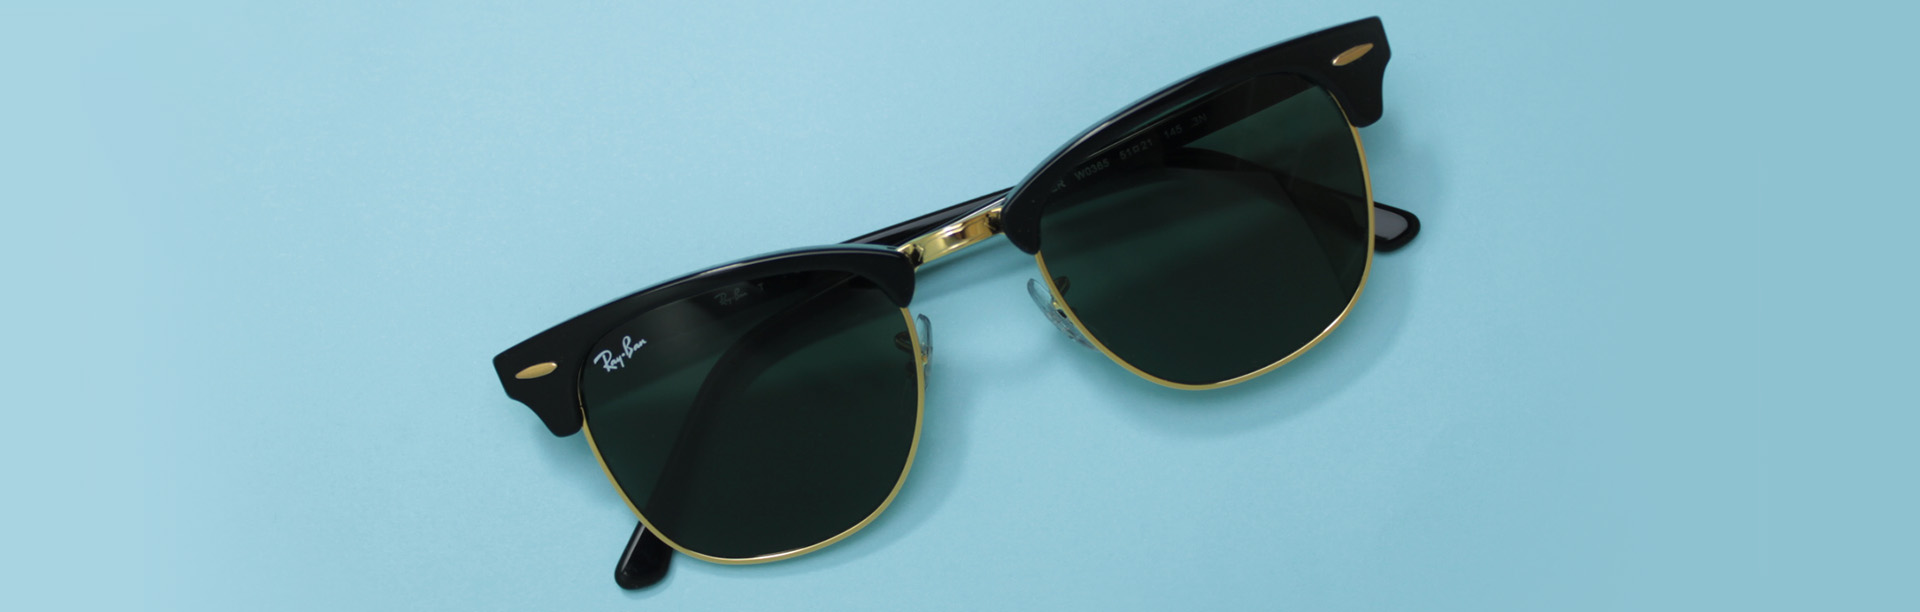 Ray-Ban Clubmaster 3016 sunglasses Review Bottom Banner | EyeWearThese.com